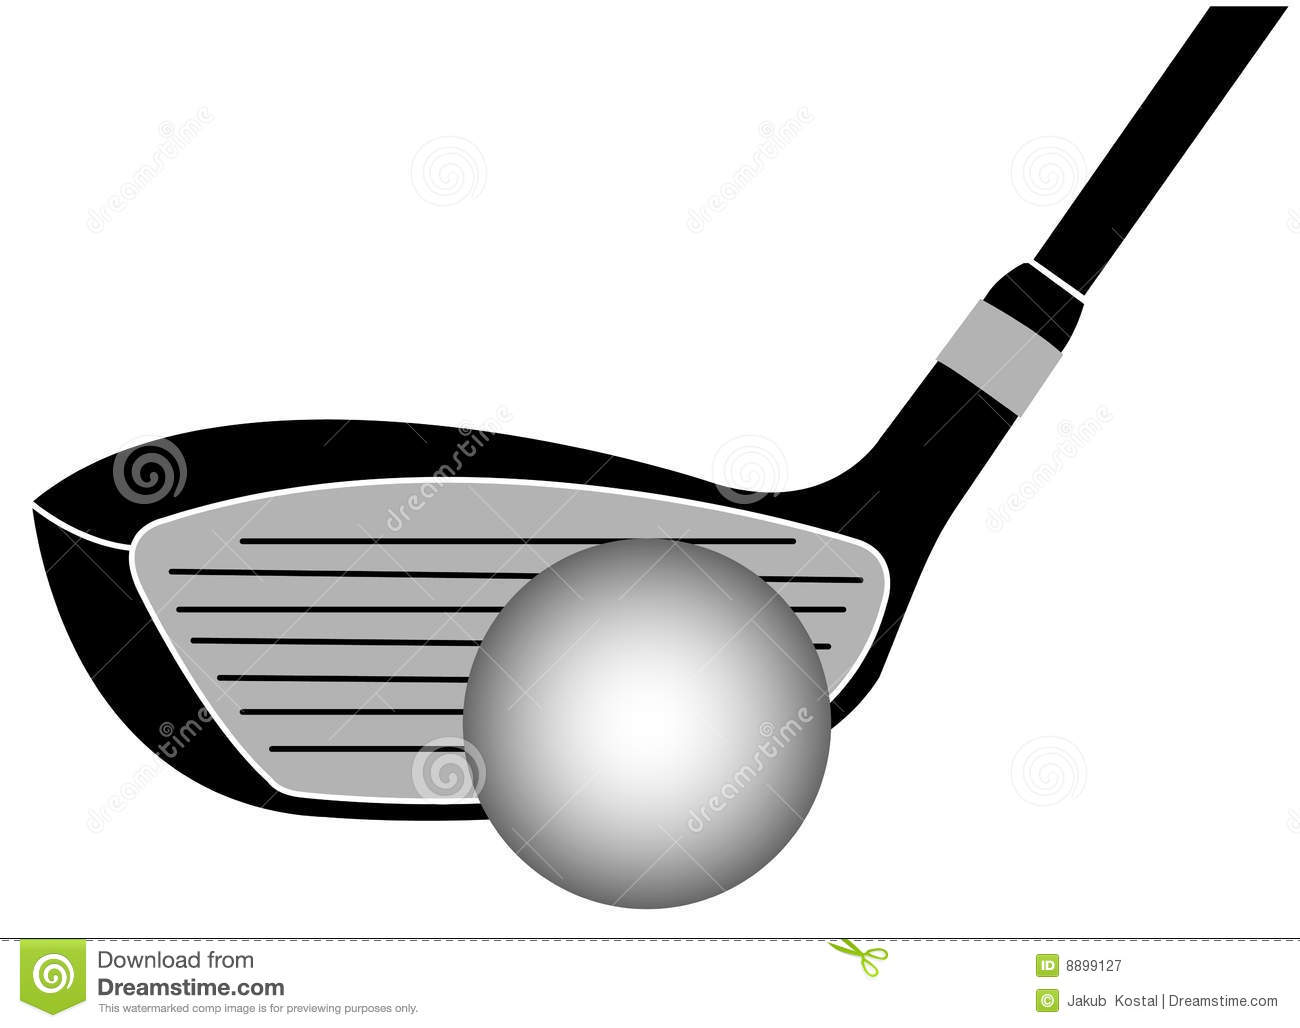 Club clipart golf driver, Club golf driver Transparent FREE.